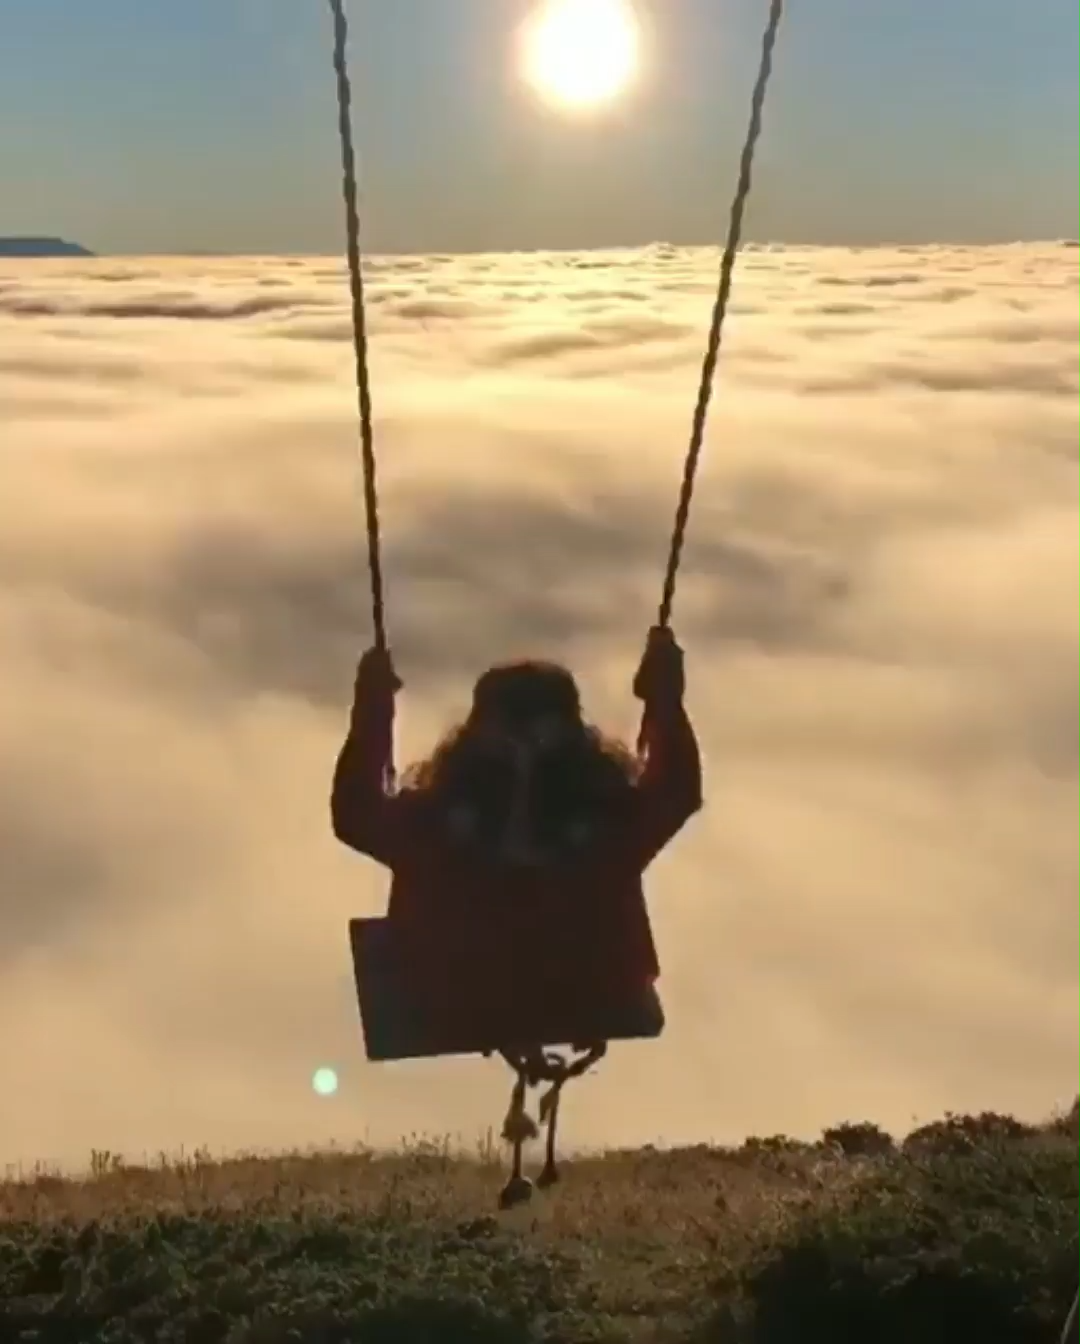 A Swing in the Skies! 😍